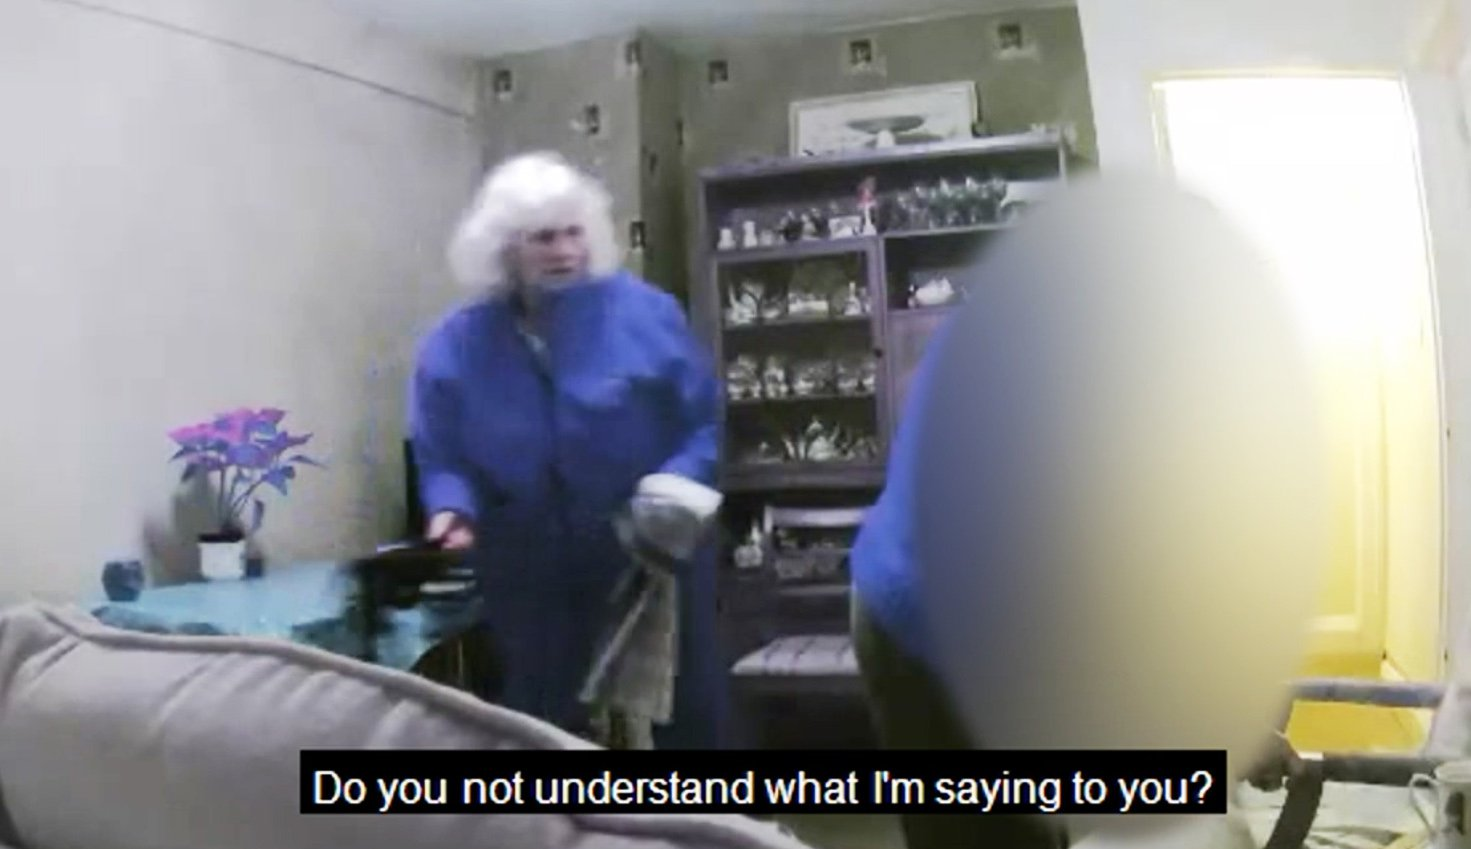 "BNPS.co.uk (01202 558833)?Pic: DorsetPolice/BNPS CCTV stills from footage of Susan Hind mistreating a dementia sufferer. A carer who subjected a 78-year-old dementia sufferer to ""cruel"" and ""degrading"" treatment today faces jail after she was caught on CCTV cameras installed by the woman's daughter. Susan Hind, 69, subjected vulnerable Martha Davison to abuse, threats, mockery and undignified acts, calling her a ""dirty bitch"" and pushing a bag of soiled clothes close to her face at her home in Bournemouth, Dorset. As she pleaded guilty to three counts of ill-treatment or wilful neglect of an individual on Thursday, Poole Magistrates were shown multiple clips of CCTV that showed Hind shouting at and degrading the elderly woman. Hind held her head in her hands as the footage was shown in which she told the elderly woman she ""made her sick"" and called her a disgrace and a ""dirty, disgusting person""."